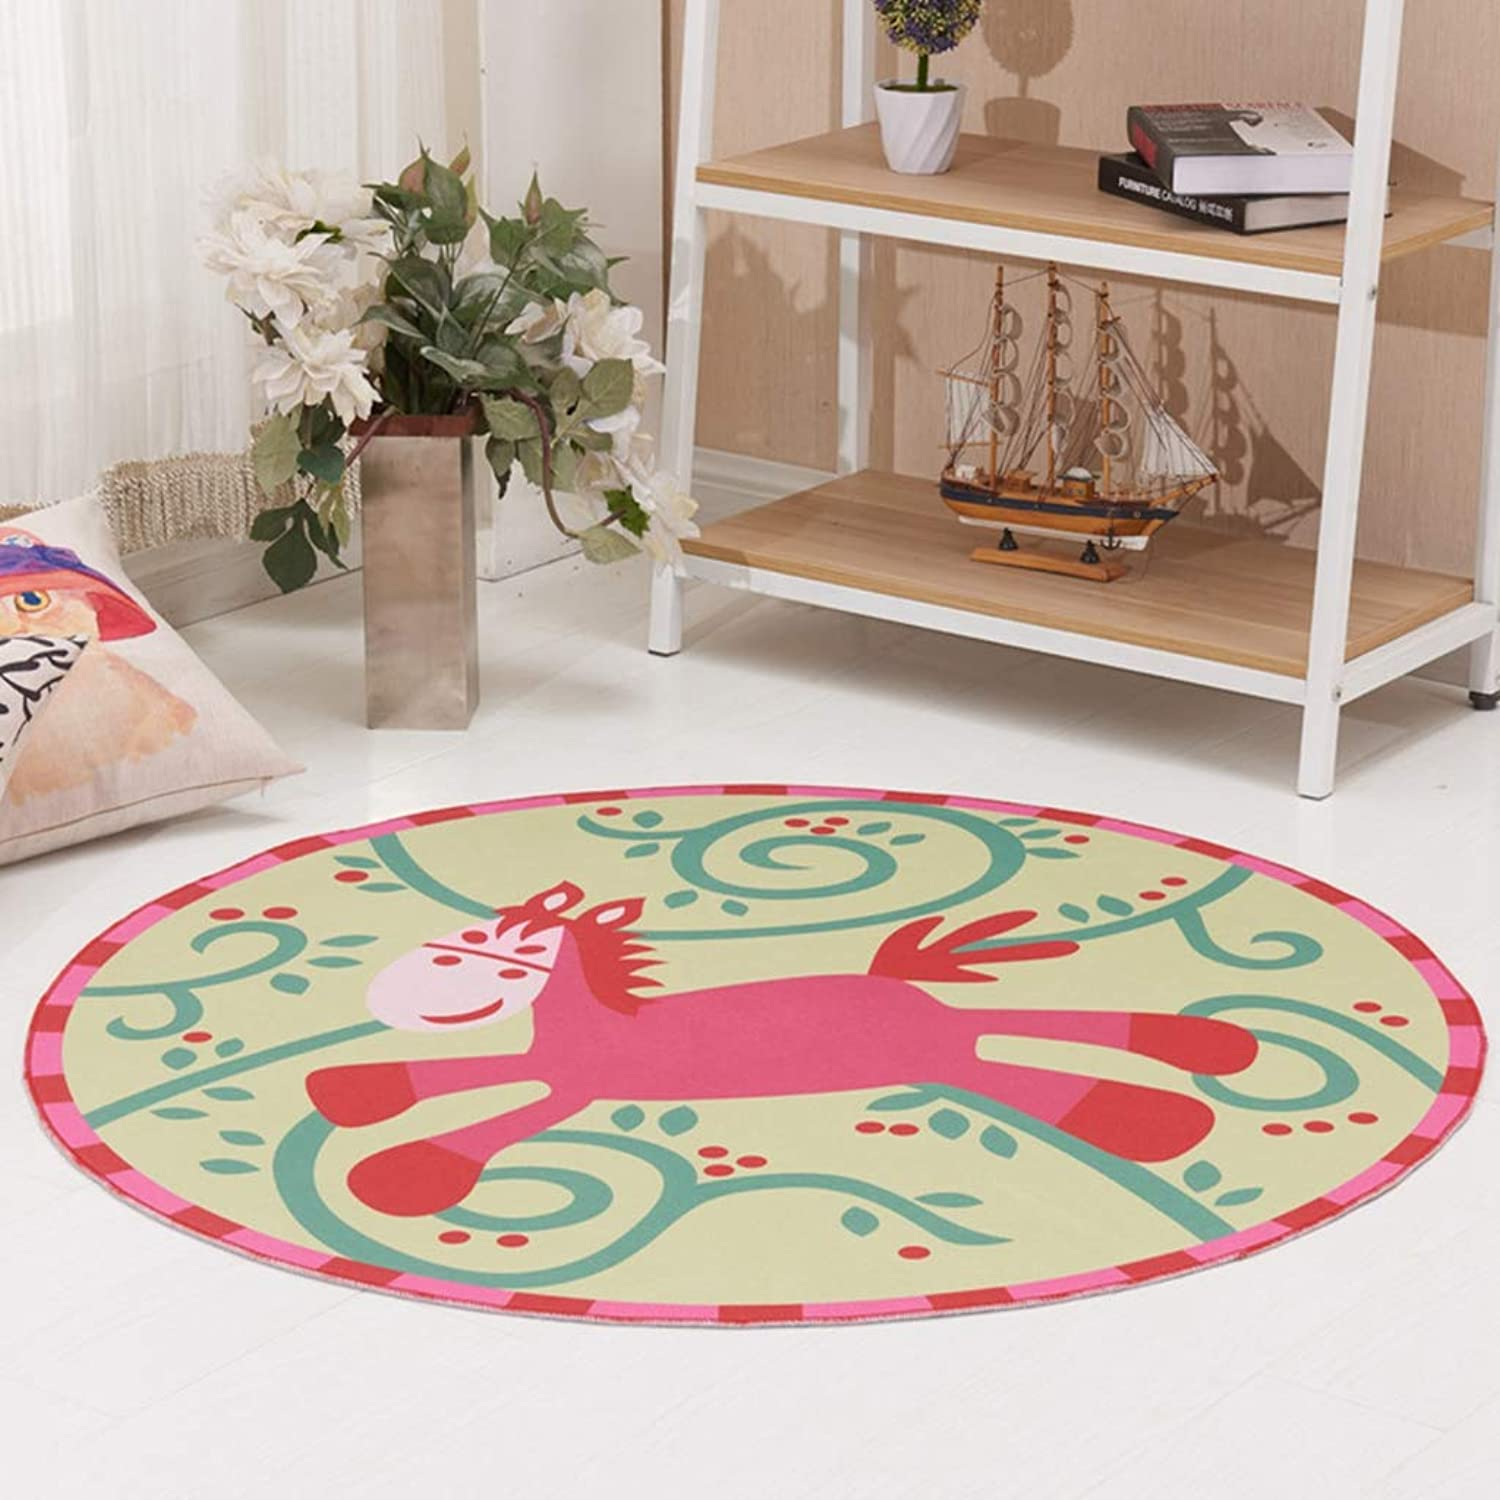 WOANA Home Decoration Area Rug Cartoon Printed Play Crawling Carpets Floor Rug Living Doormat Chair Mat